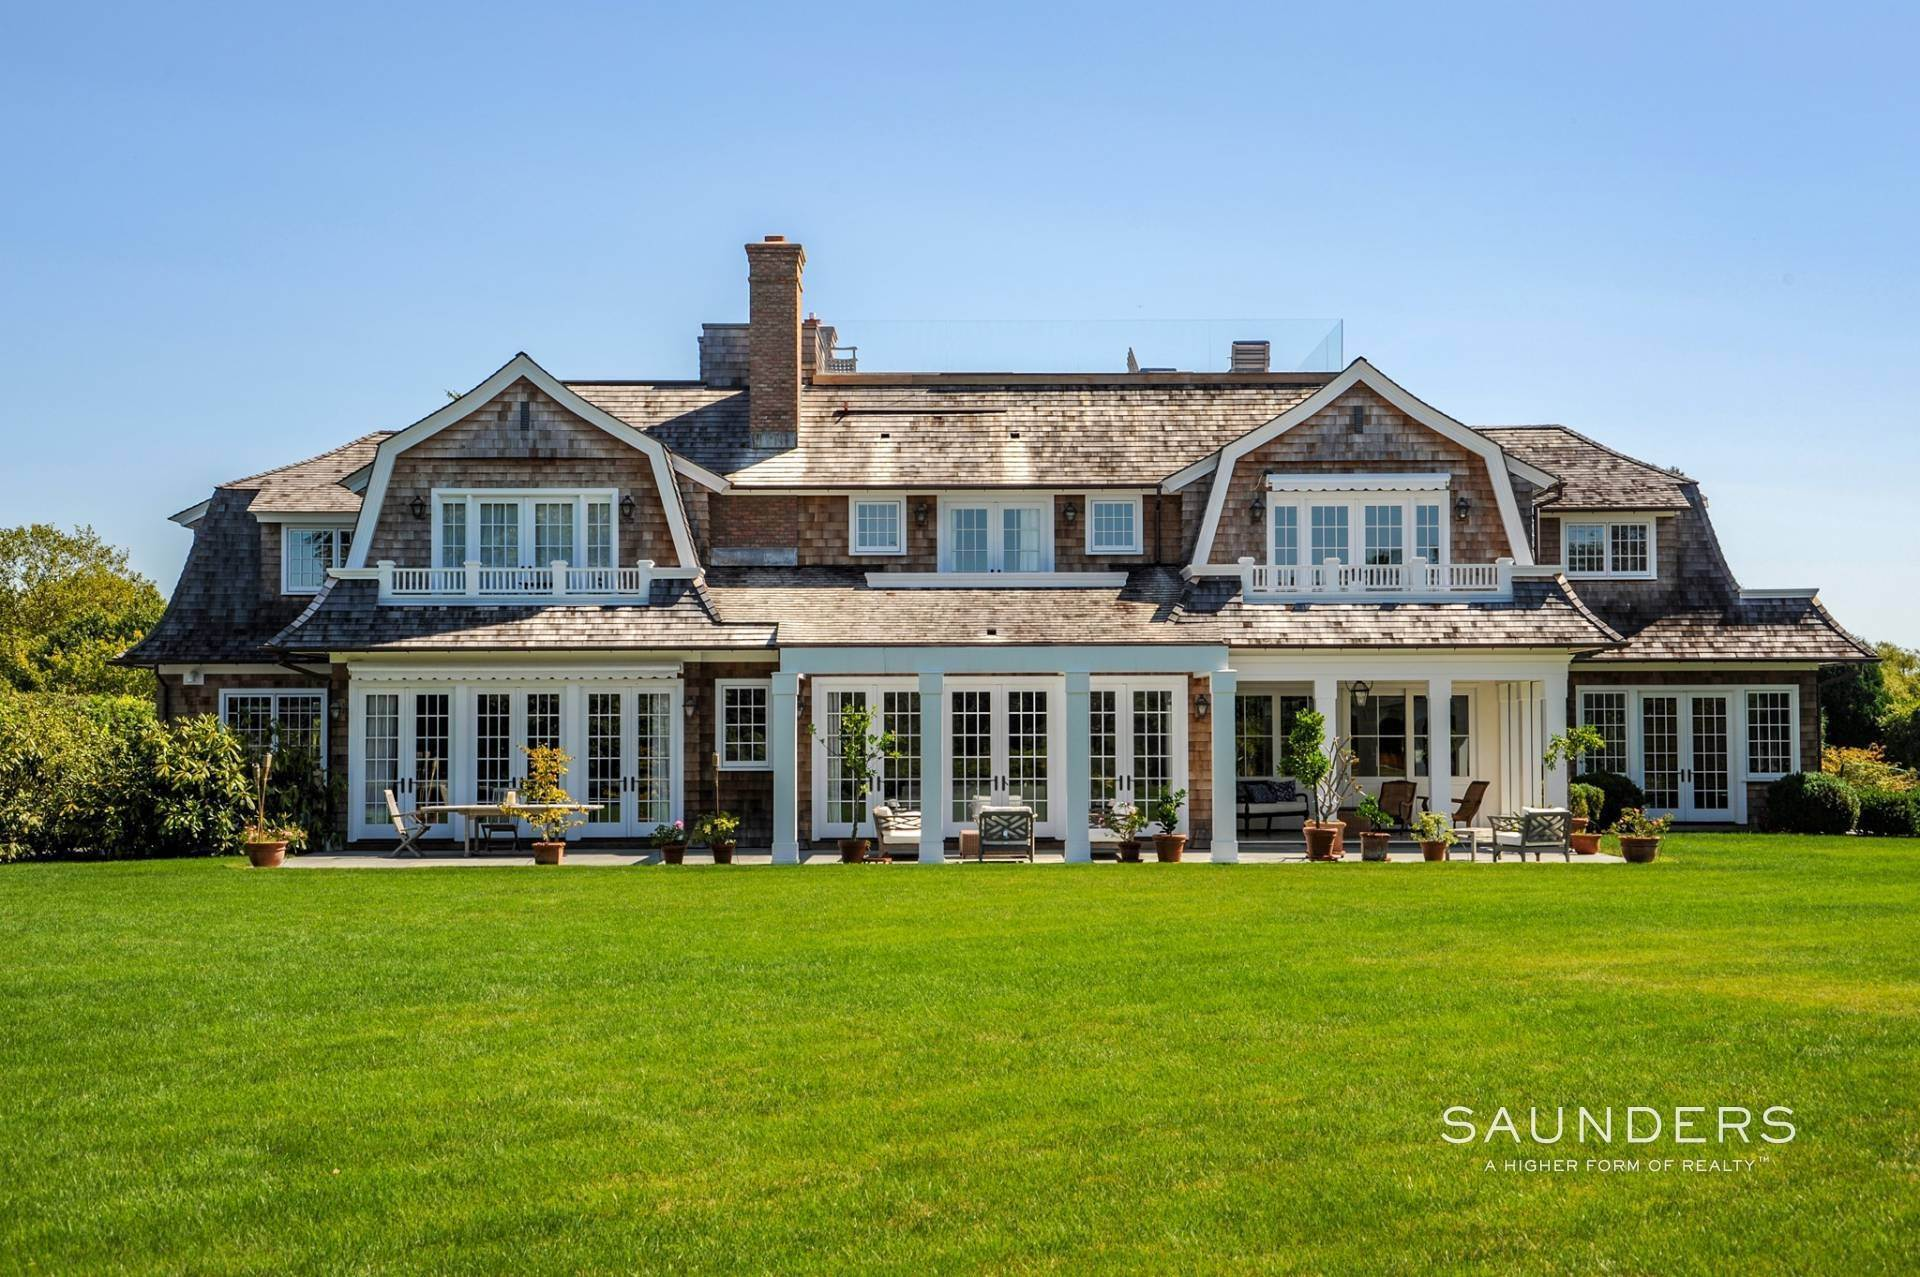 Single Family Homes at Sagaponack Gold Sagaponack Village, Southampton Town, NY 11962